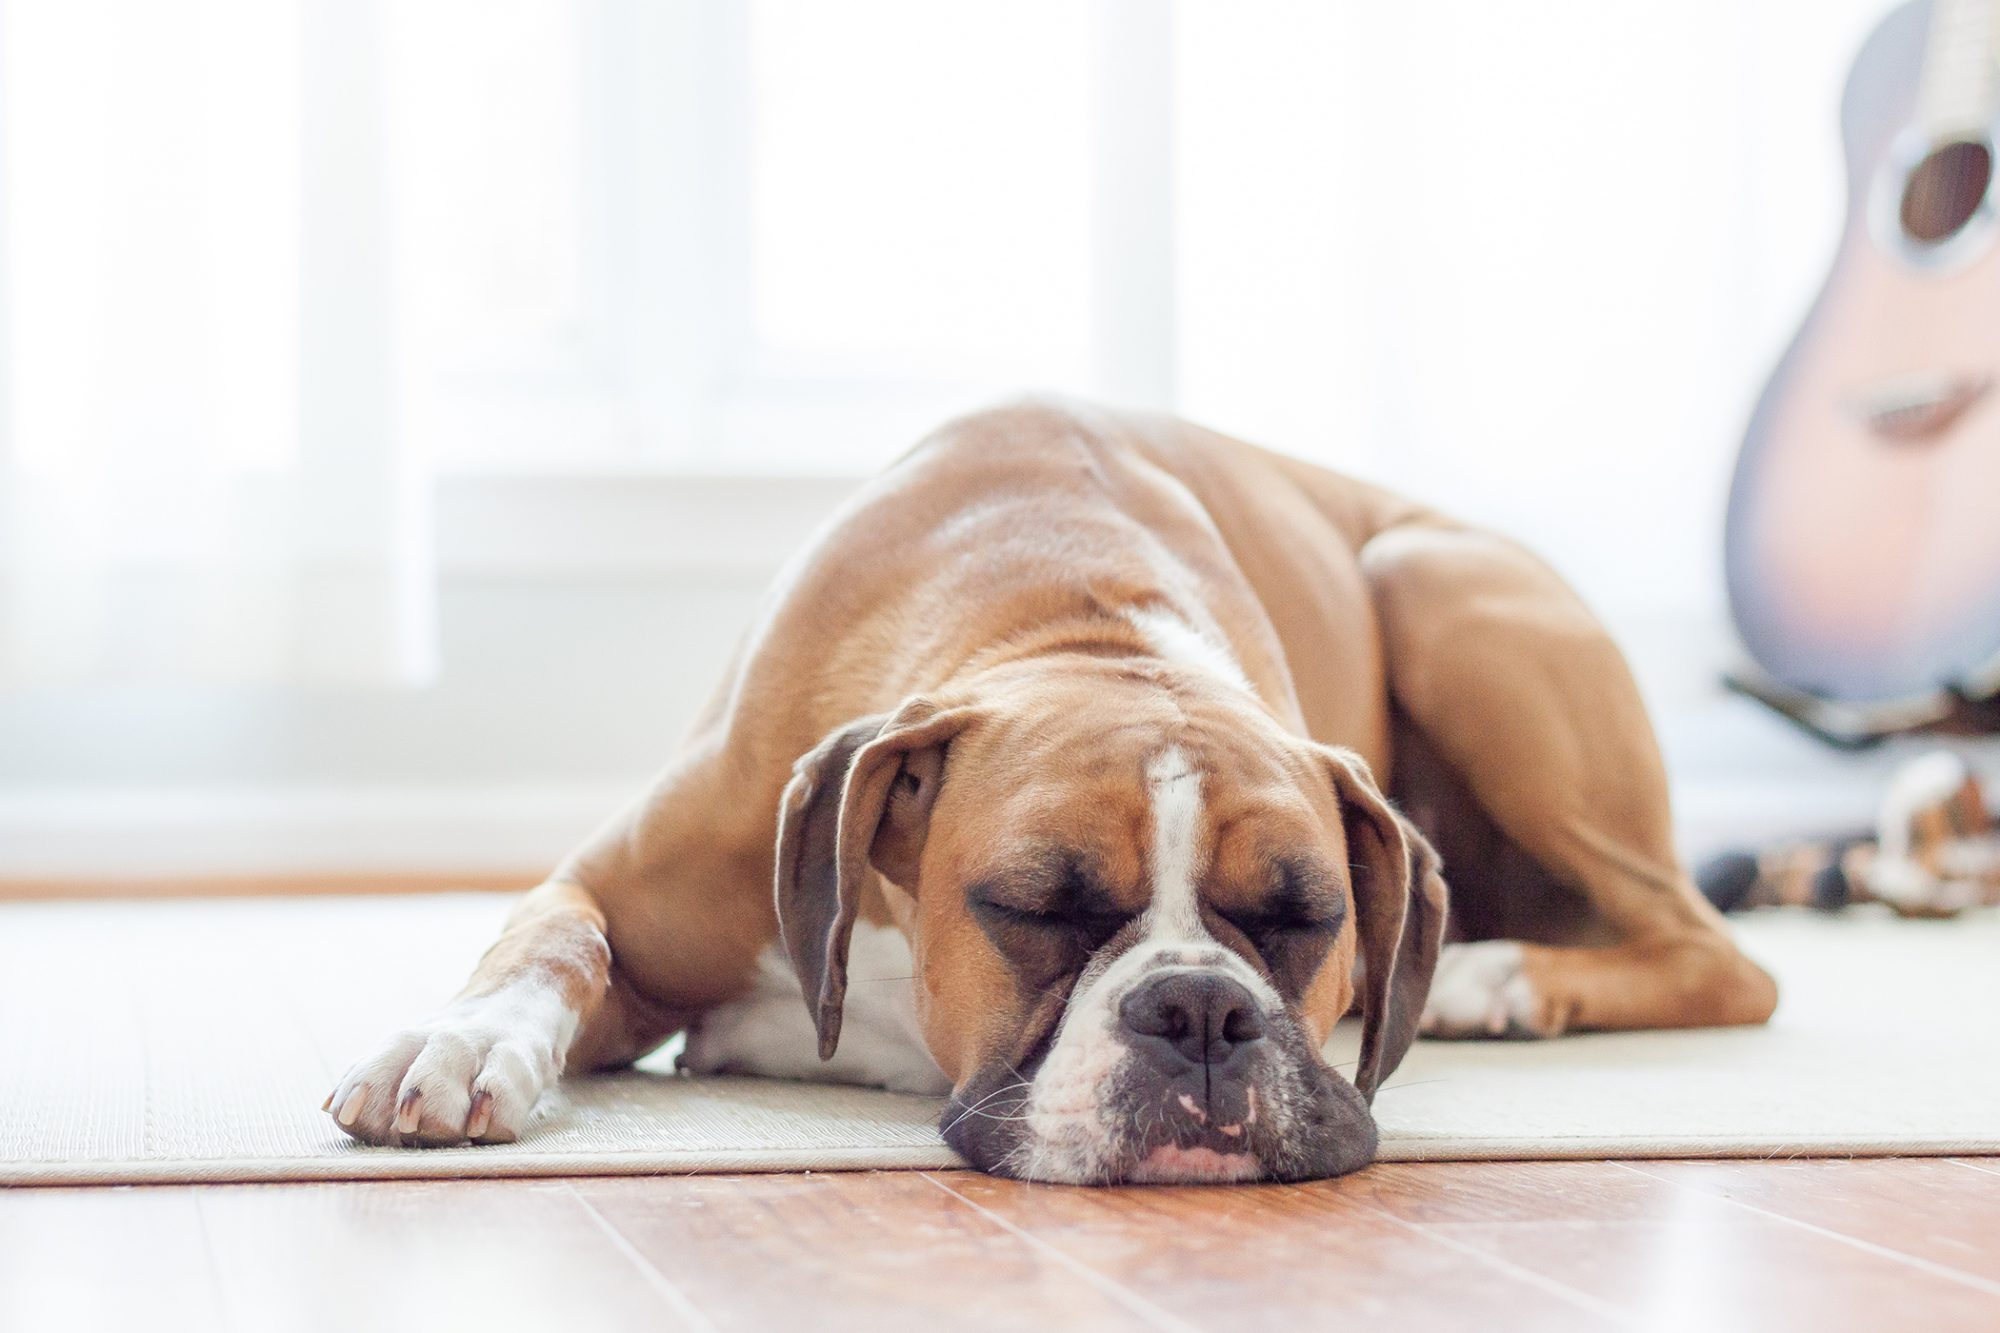 boxer sleeping on floor